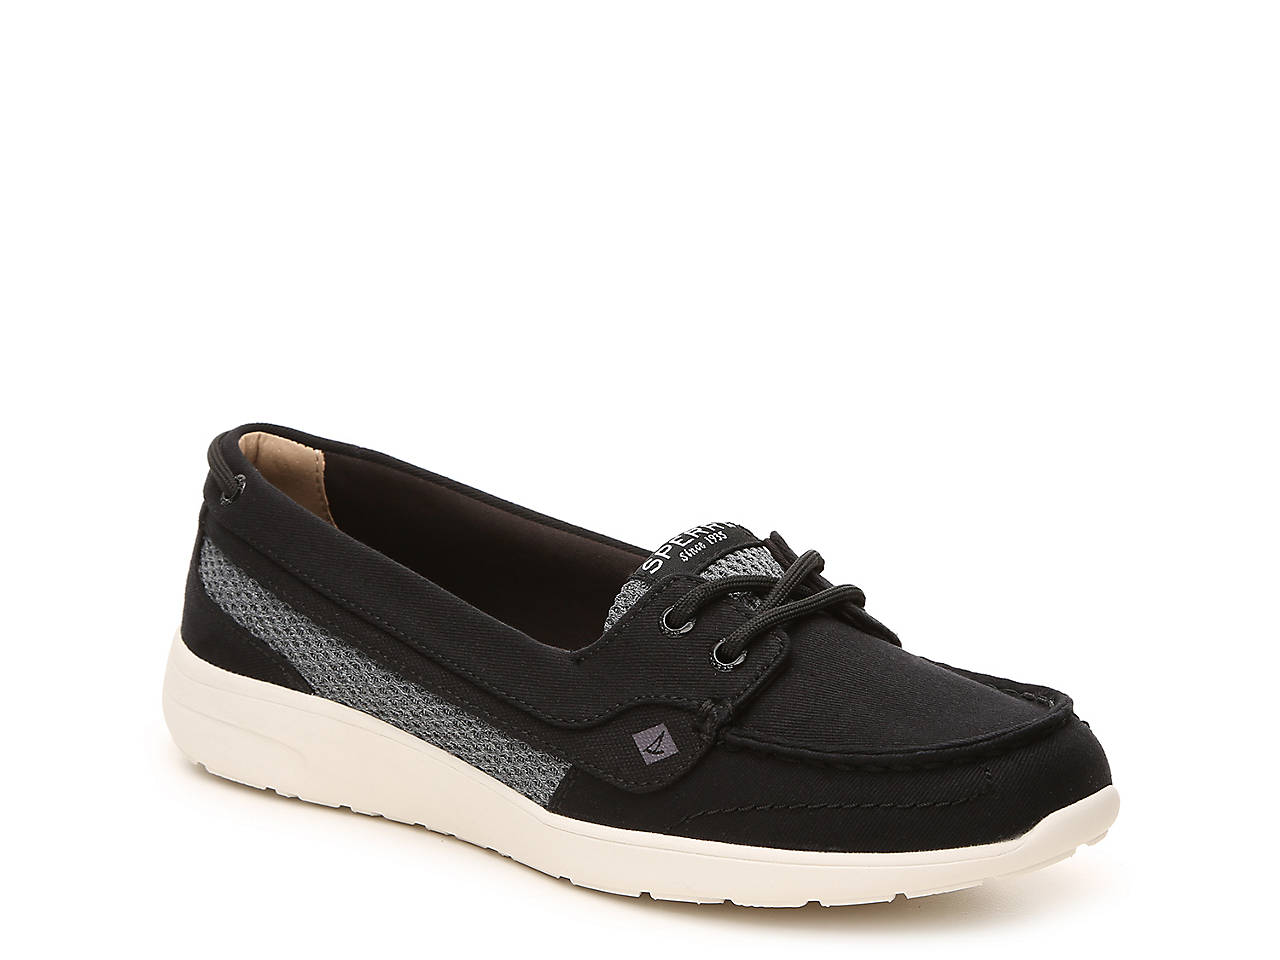 quality original release dates for sale Women's Sperry Rio Point Boat Shoes dGZ7SYP